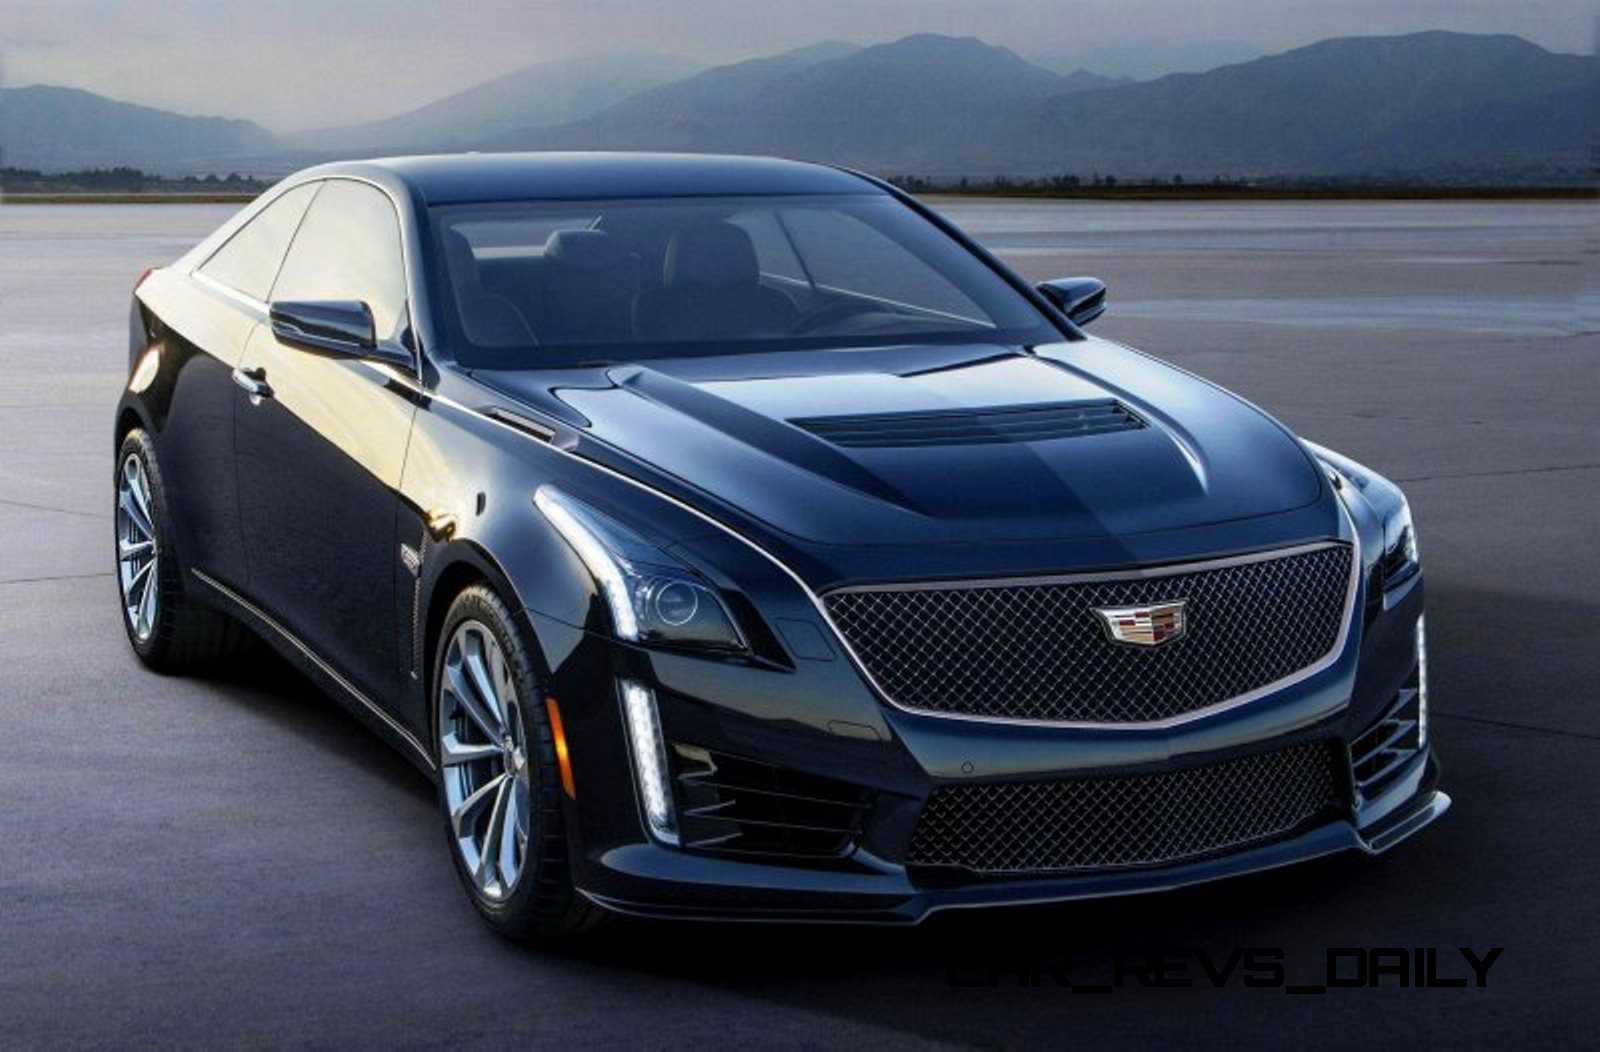 cadillac cts renderings rs cabriolet